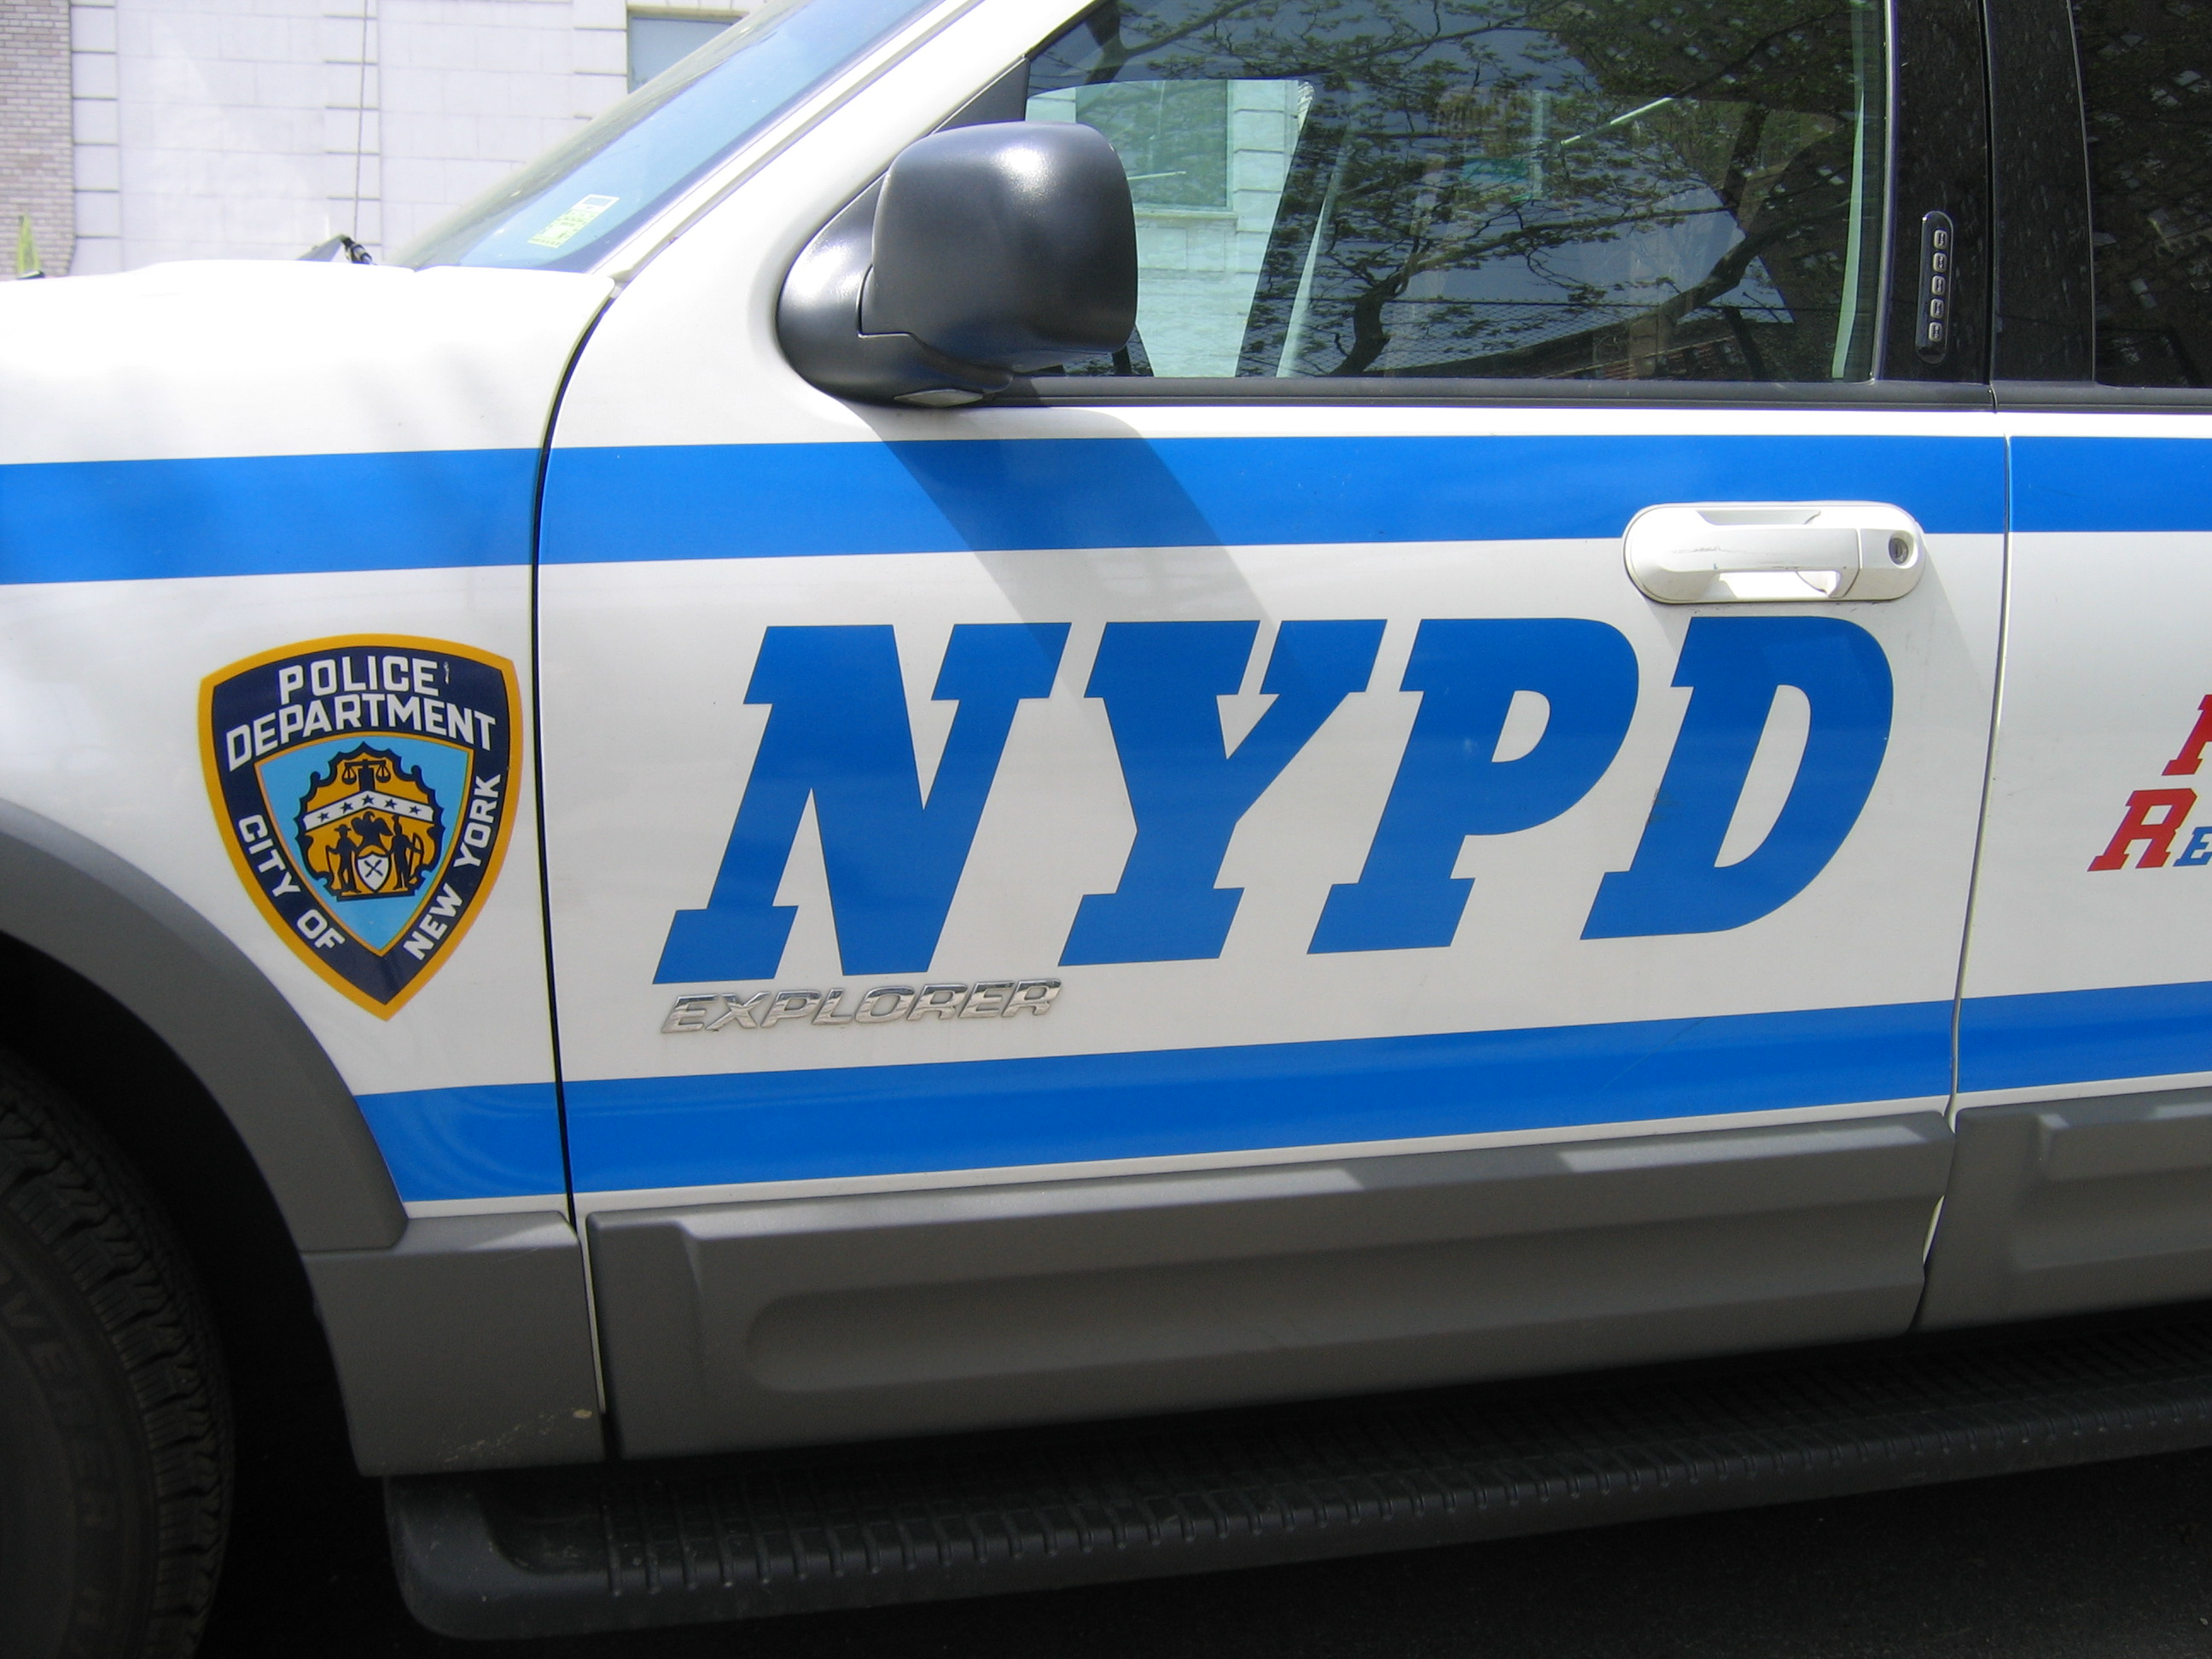 Contractor Hired To 'Dispose' Of Old Ballistic Vests For NYPD, Sells Them On eBay Instead